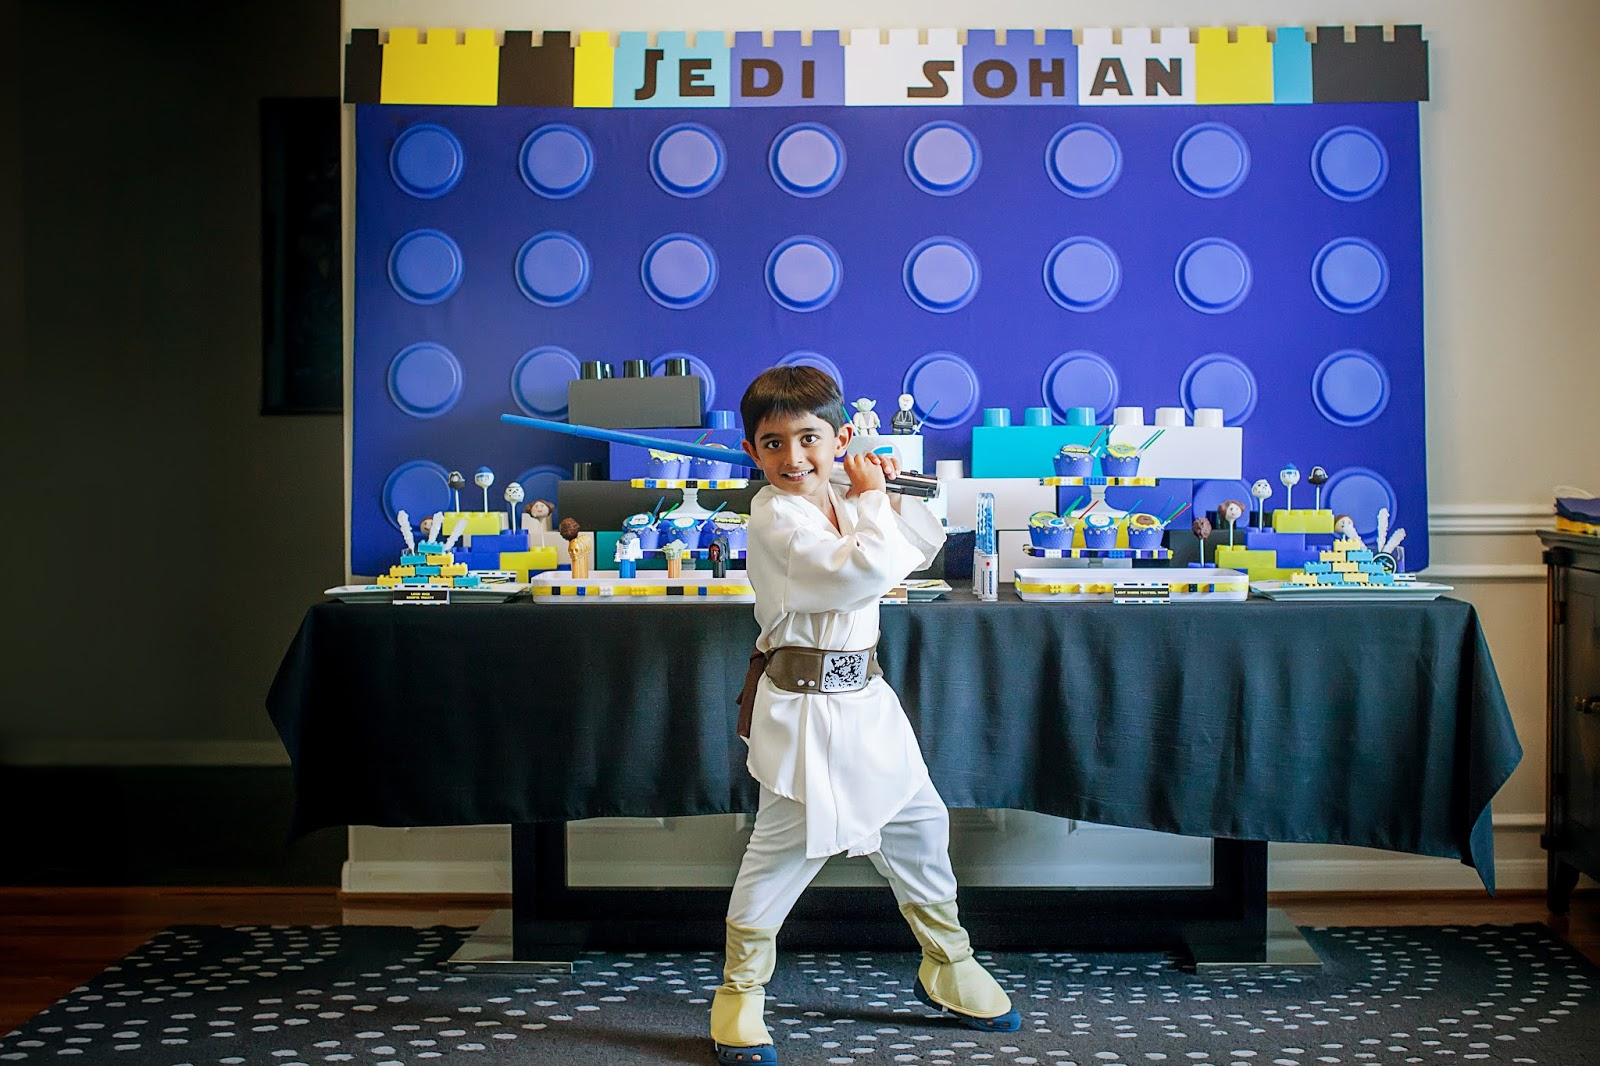 The Party Wall: Legos and Lightsabers, A Lego Star Wars inspired ...